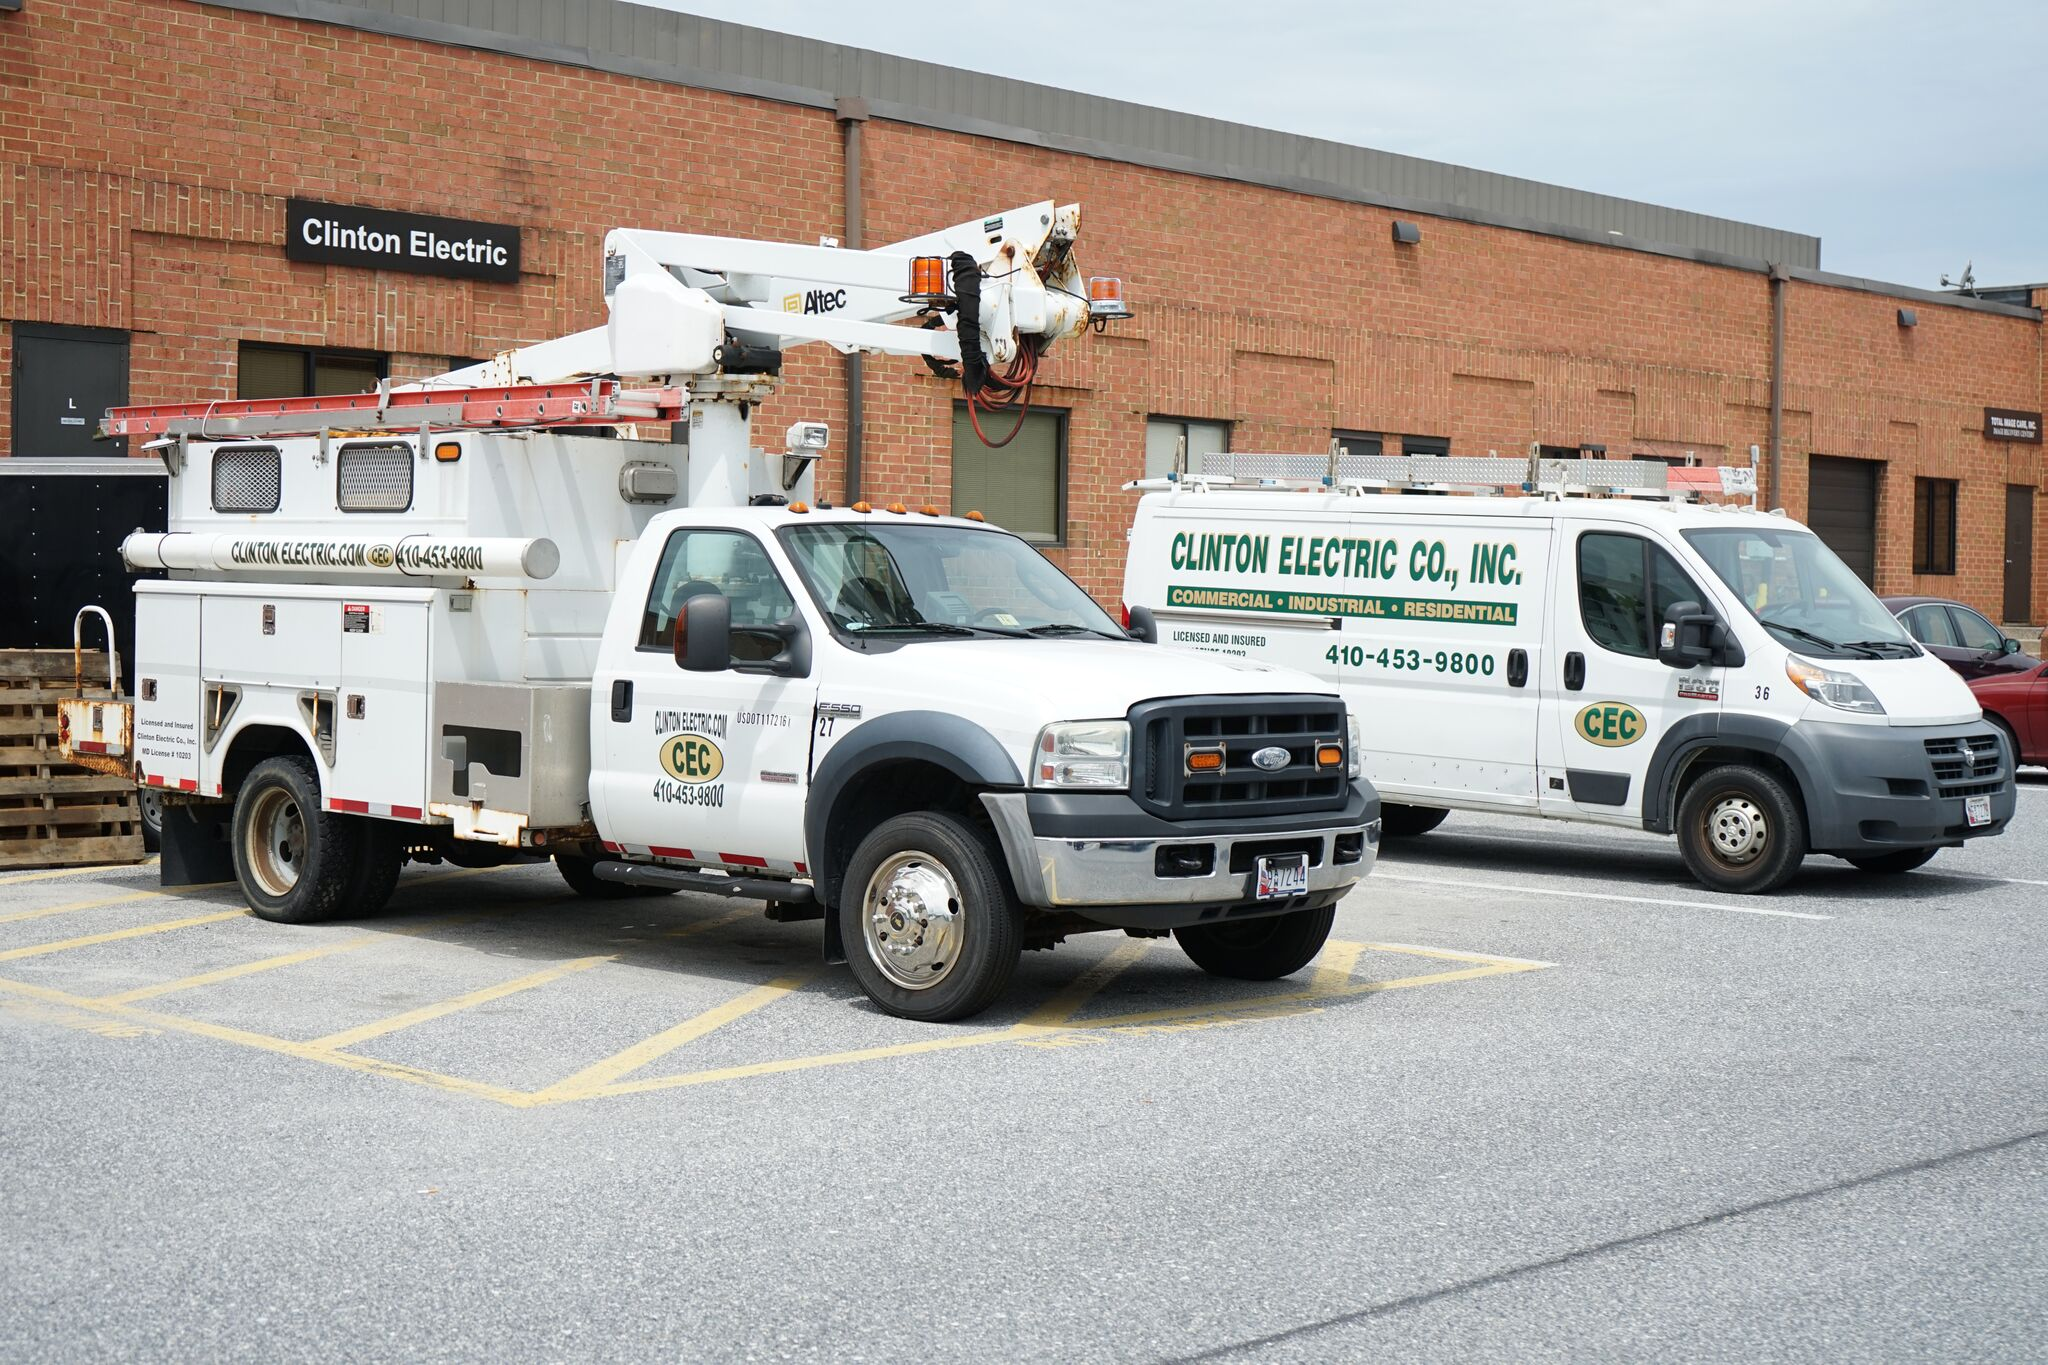 Clinton Electric Company - Residential & Commercial Electricians in Baltimore, MD